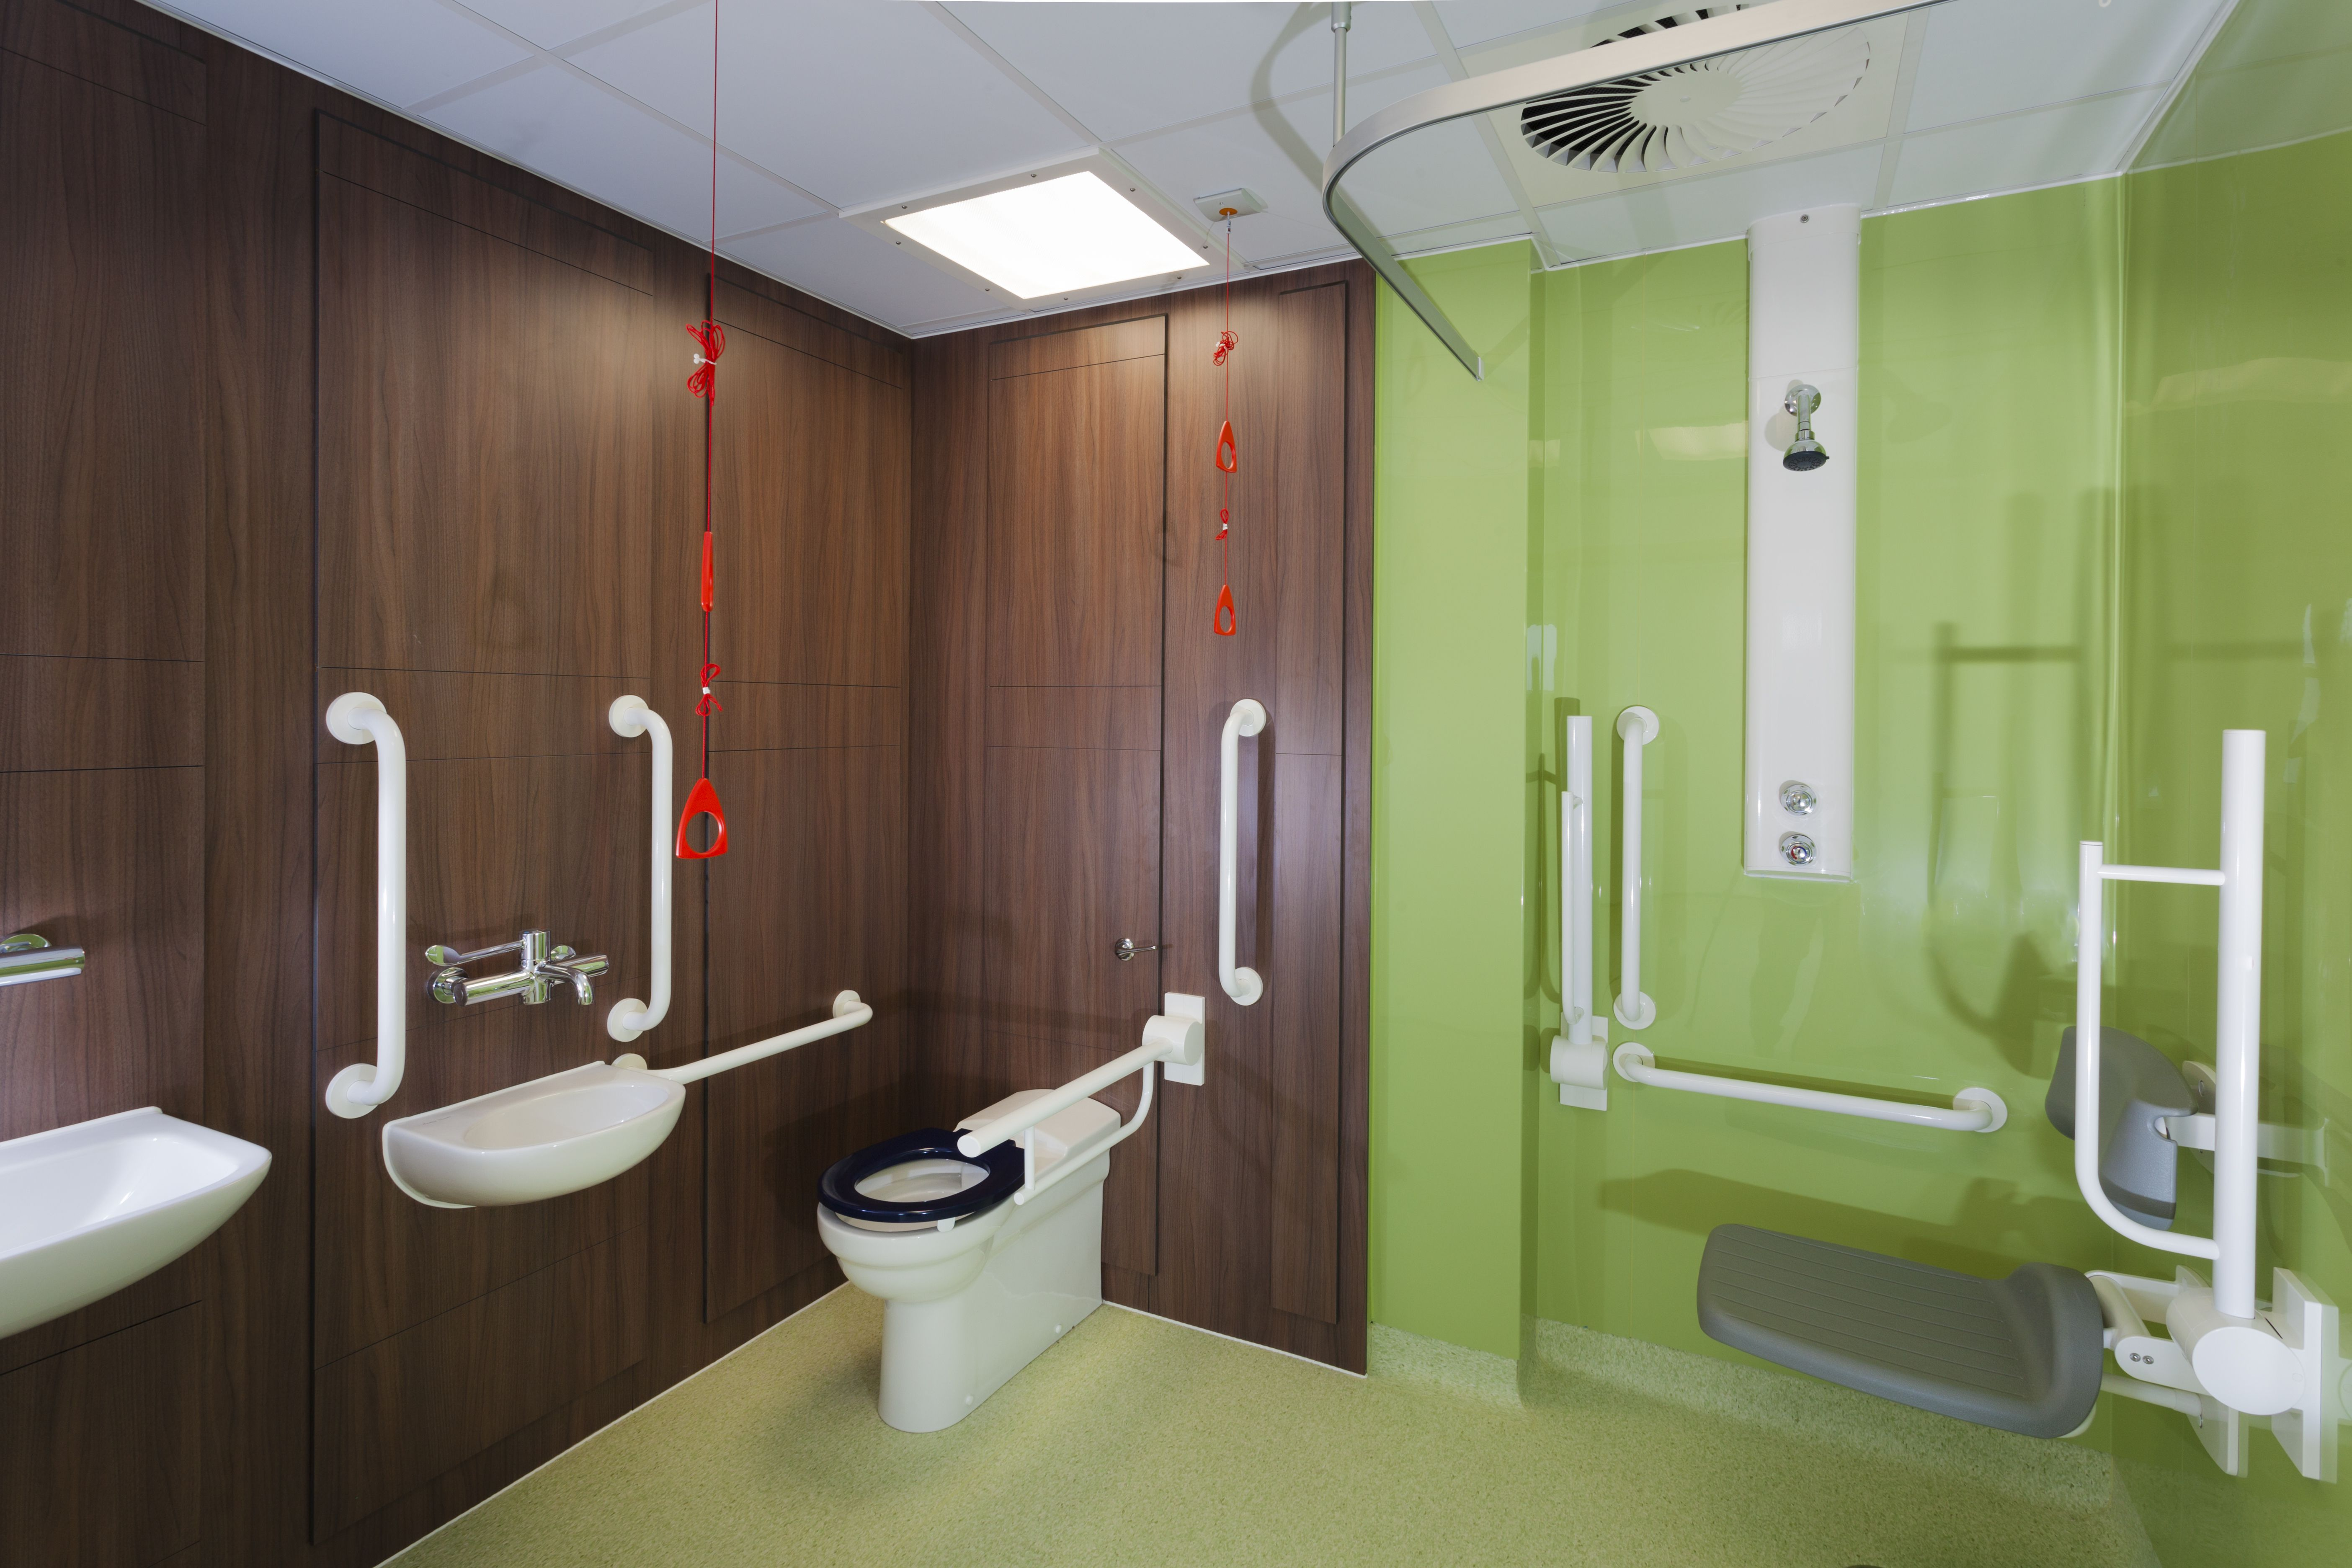 Ada Bathroom Mirror Requirements ada construction guidelines for accessible bathrooms